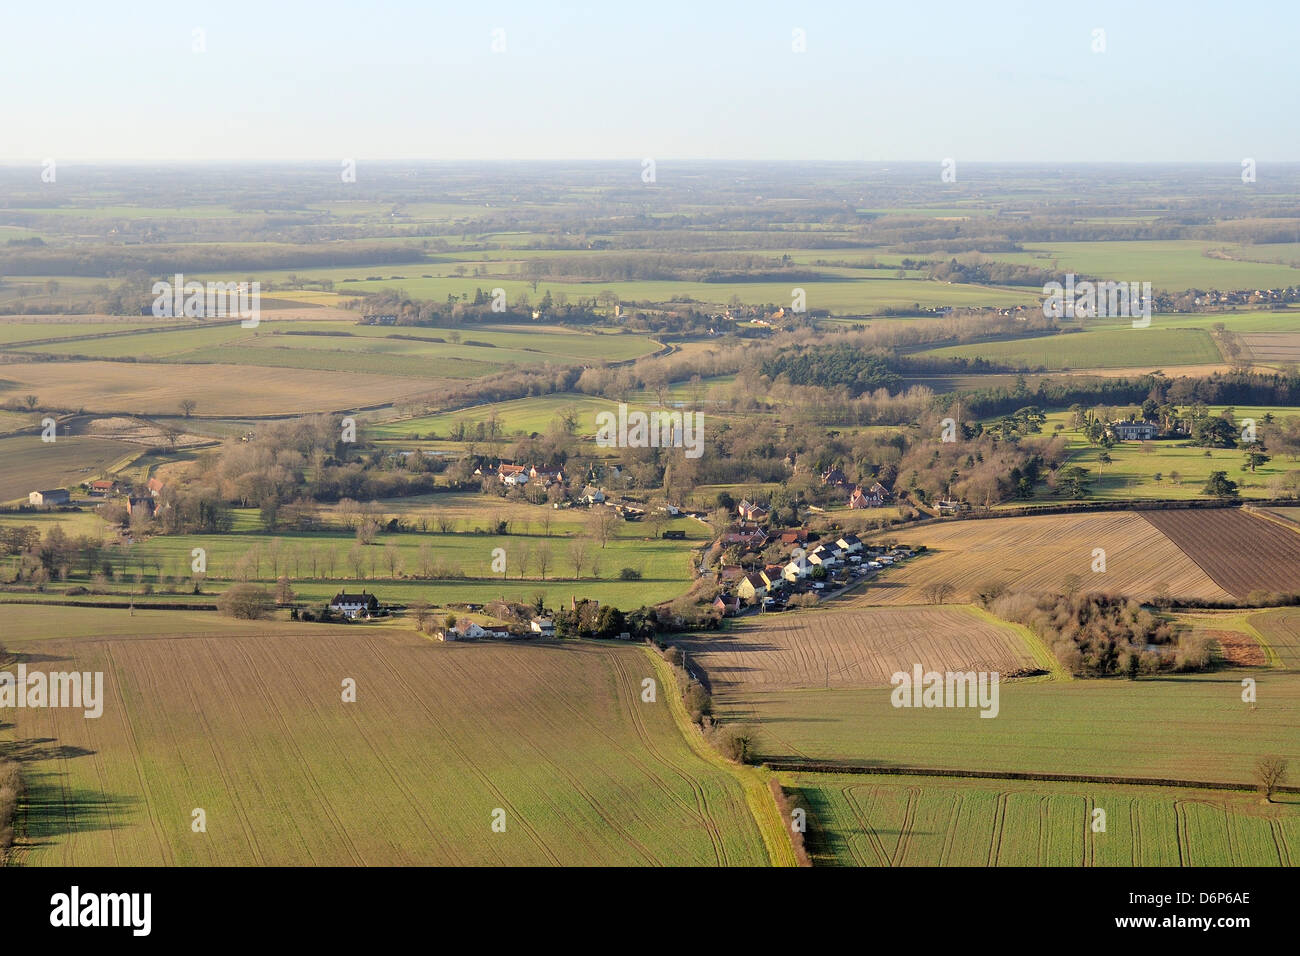 Aerial view of rolling rural landscape with small villages, winter wheat fields and pastureland, Suffolk, England, - Stock Image